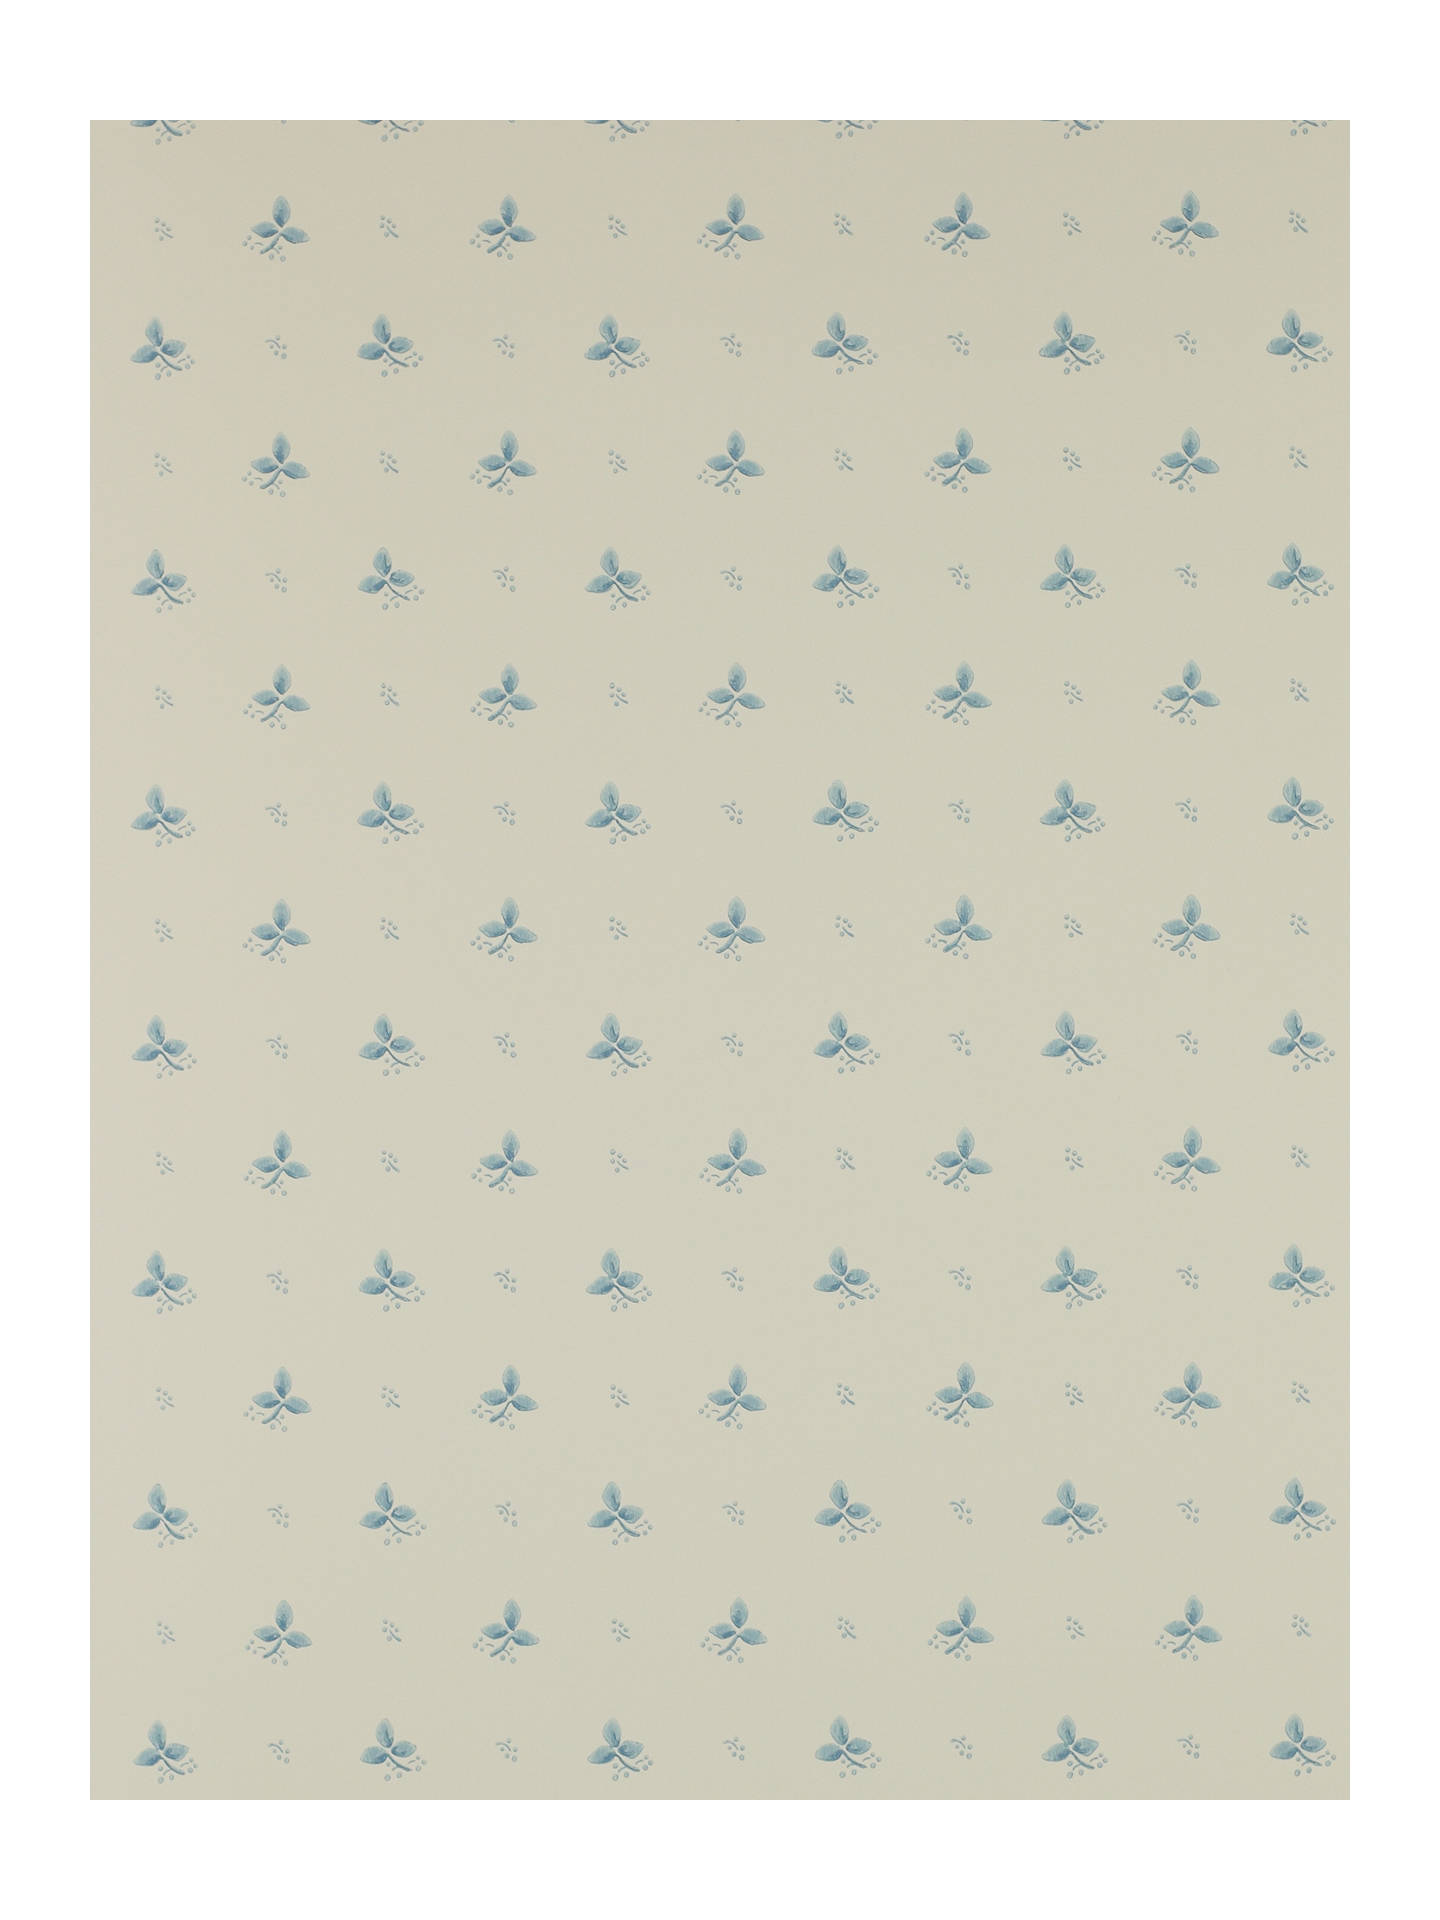 Buy Colefax & Fowler Ashling Wallpaper, Blue, 07406/05 Online at johnlewis.com